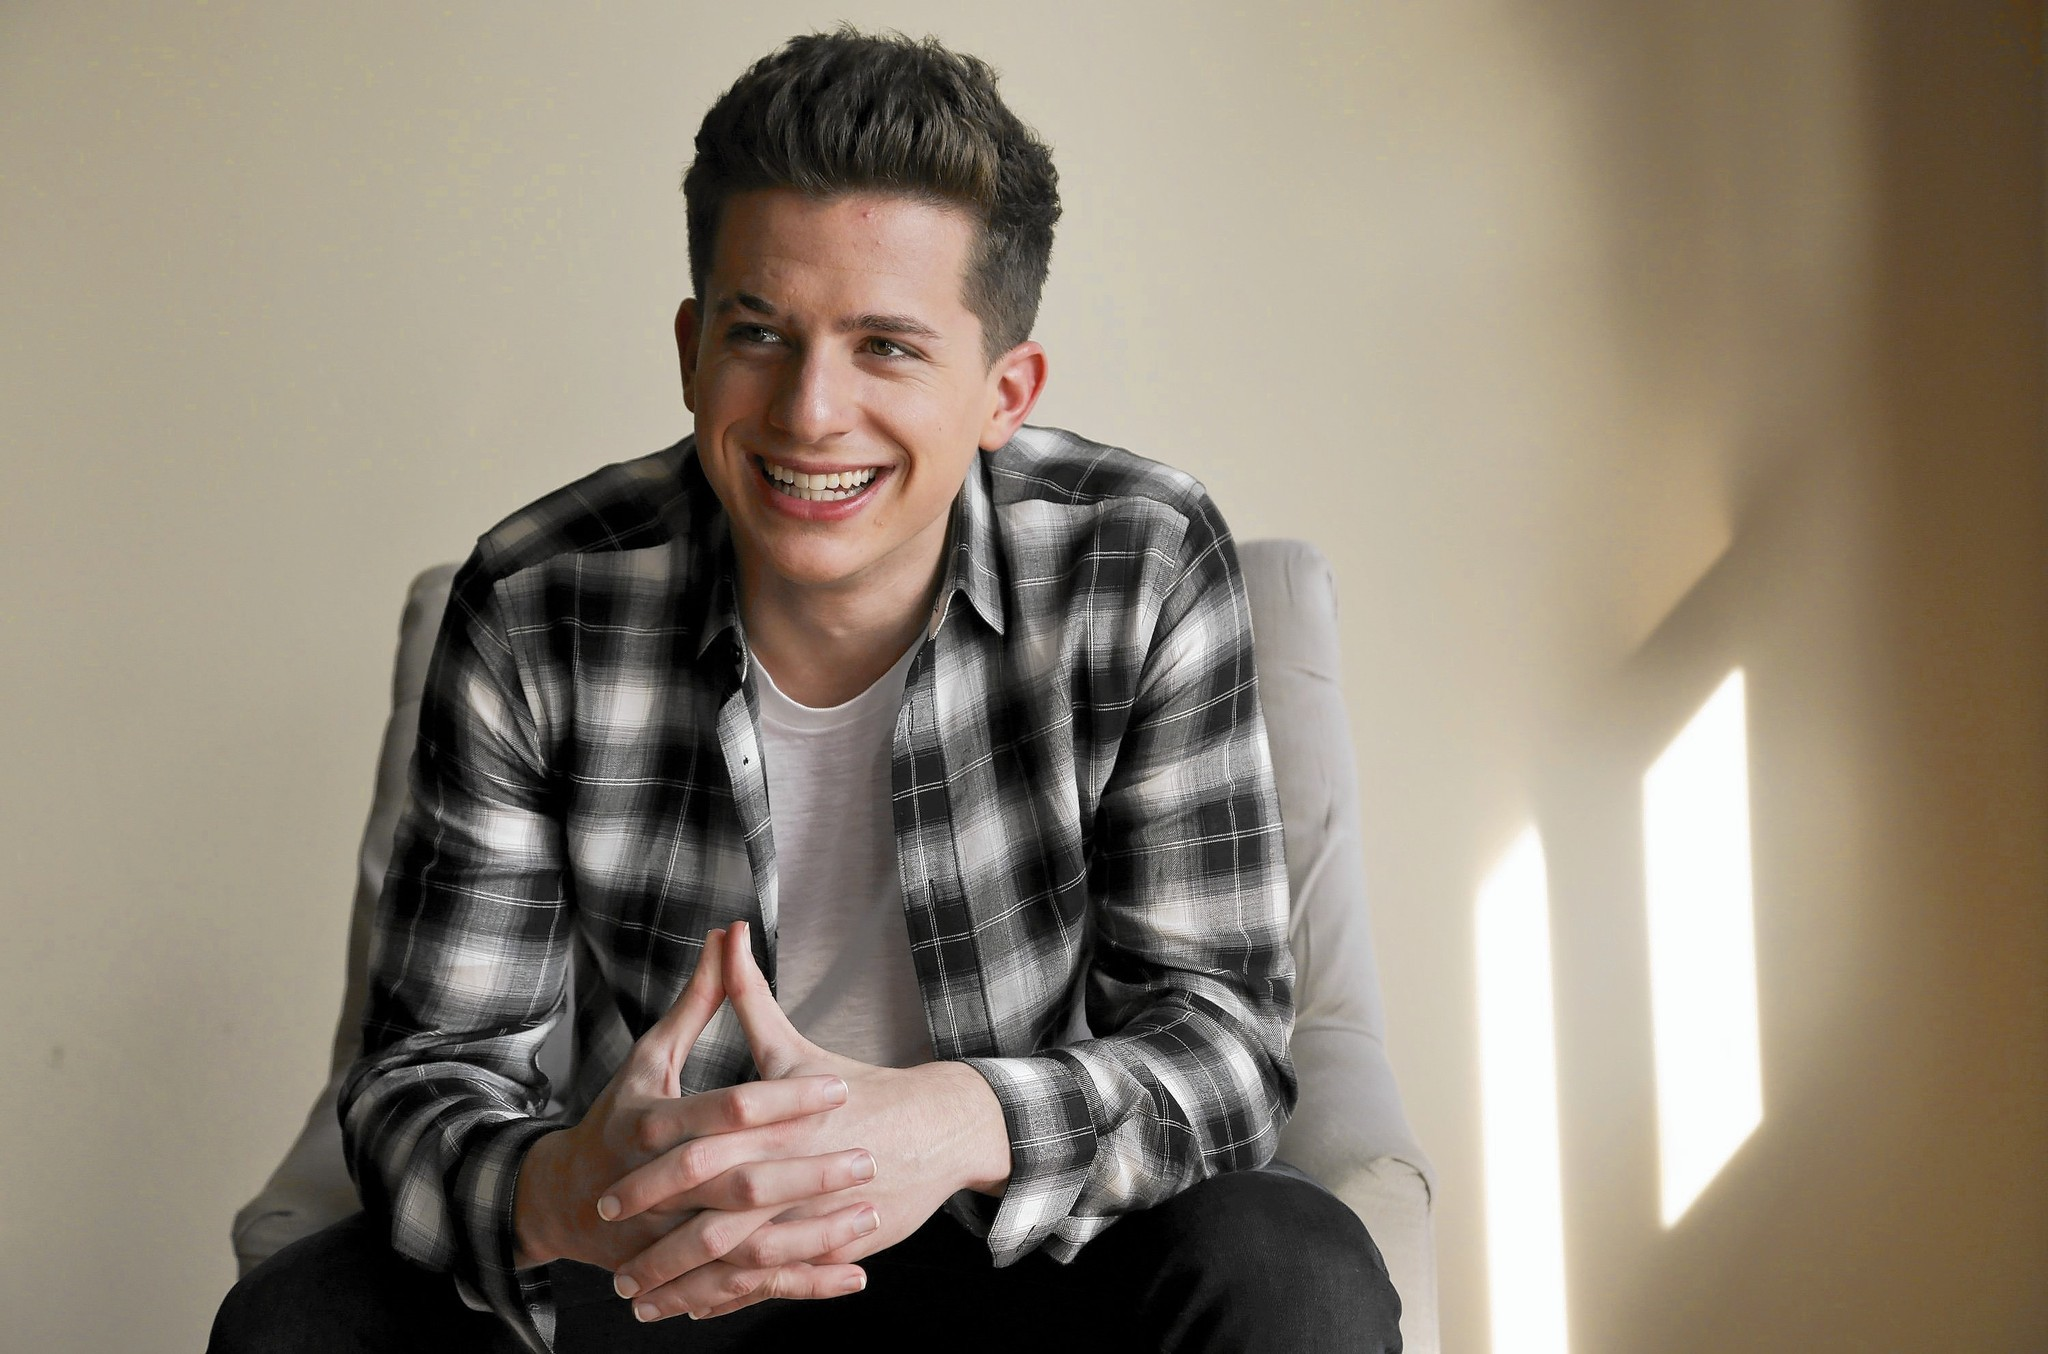 Cute Tween Wallpapers The Two Sides Of Charlie Puth Tween Idol And Hard Core